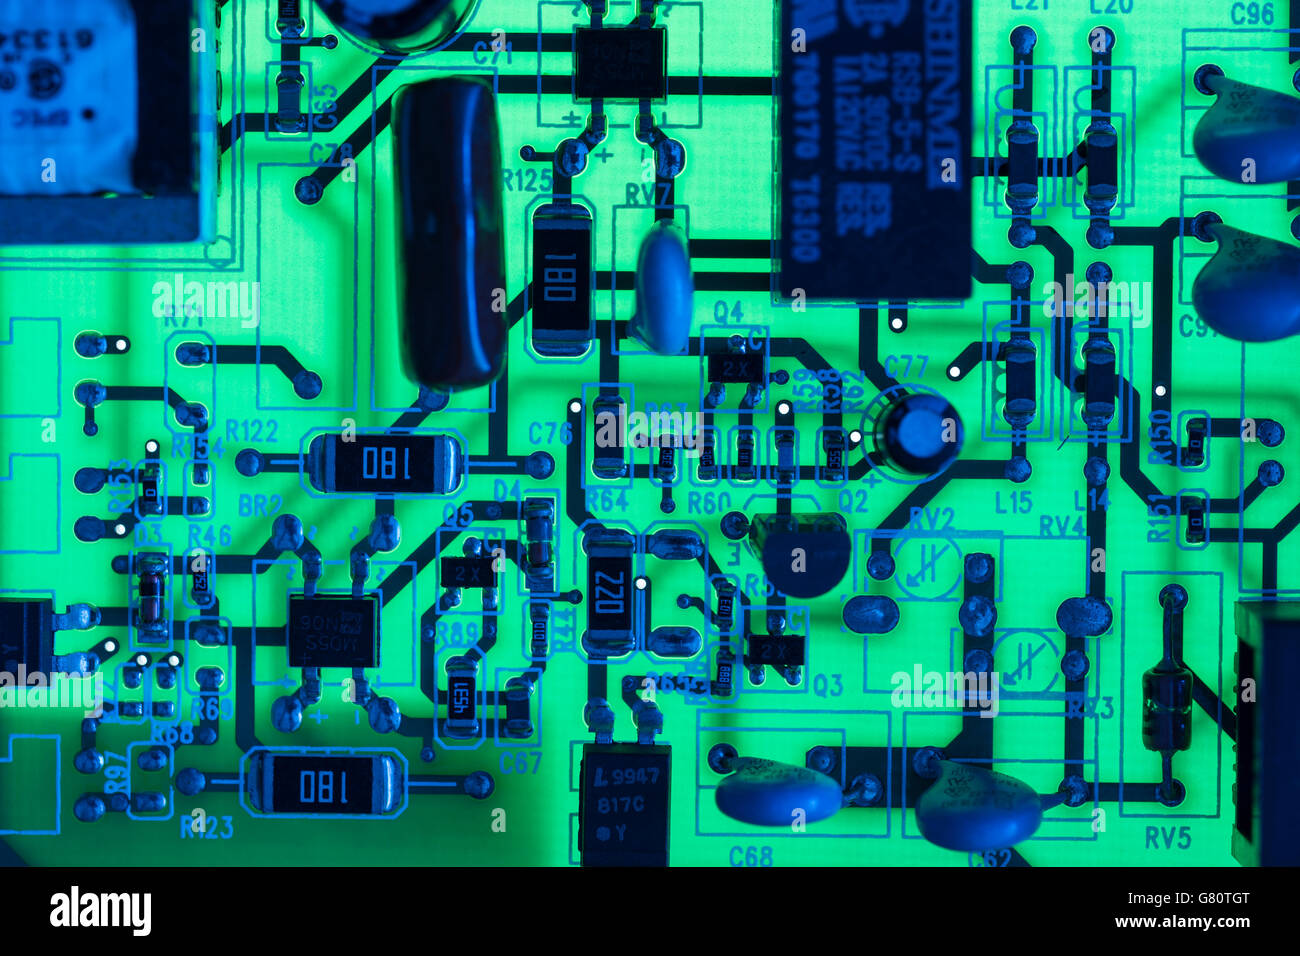 Abstract Circuit Board Stock Photos Old Electronic Royalty Free Image Technology Concept Visual Metaphor For Electronics Pcb Showing Components Lit With